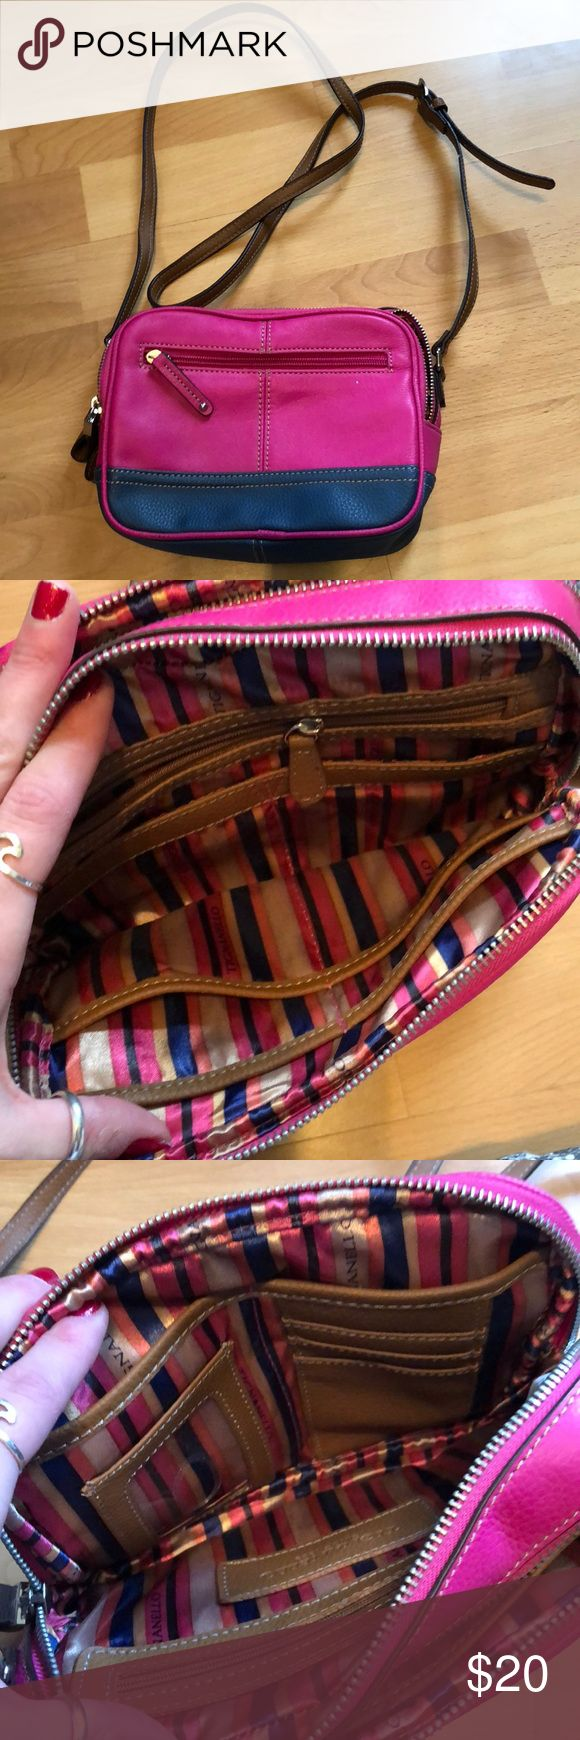 Pink and navy purse with brown strap Hot pink and navy blue purse with brown strap. Two side pockets and two inside sections with lots of compartments and organizers. Tignanello brand. 100% genuine leather. Tignanello Bags Crossbody Bags